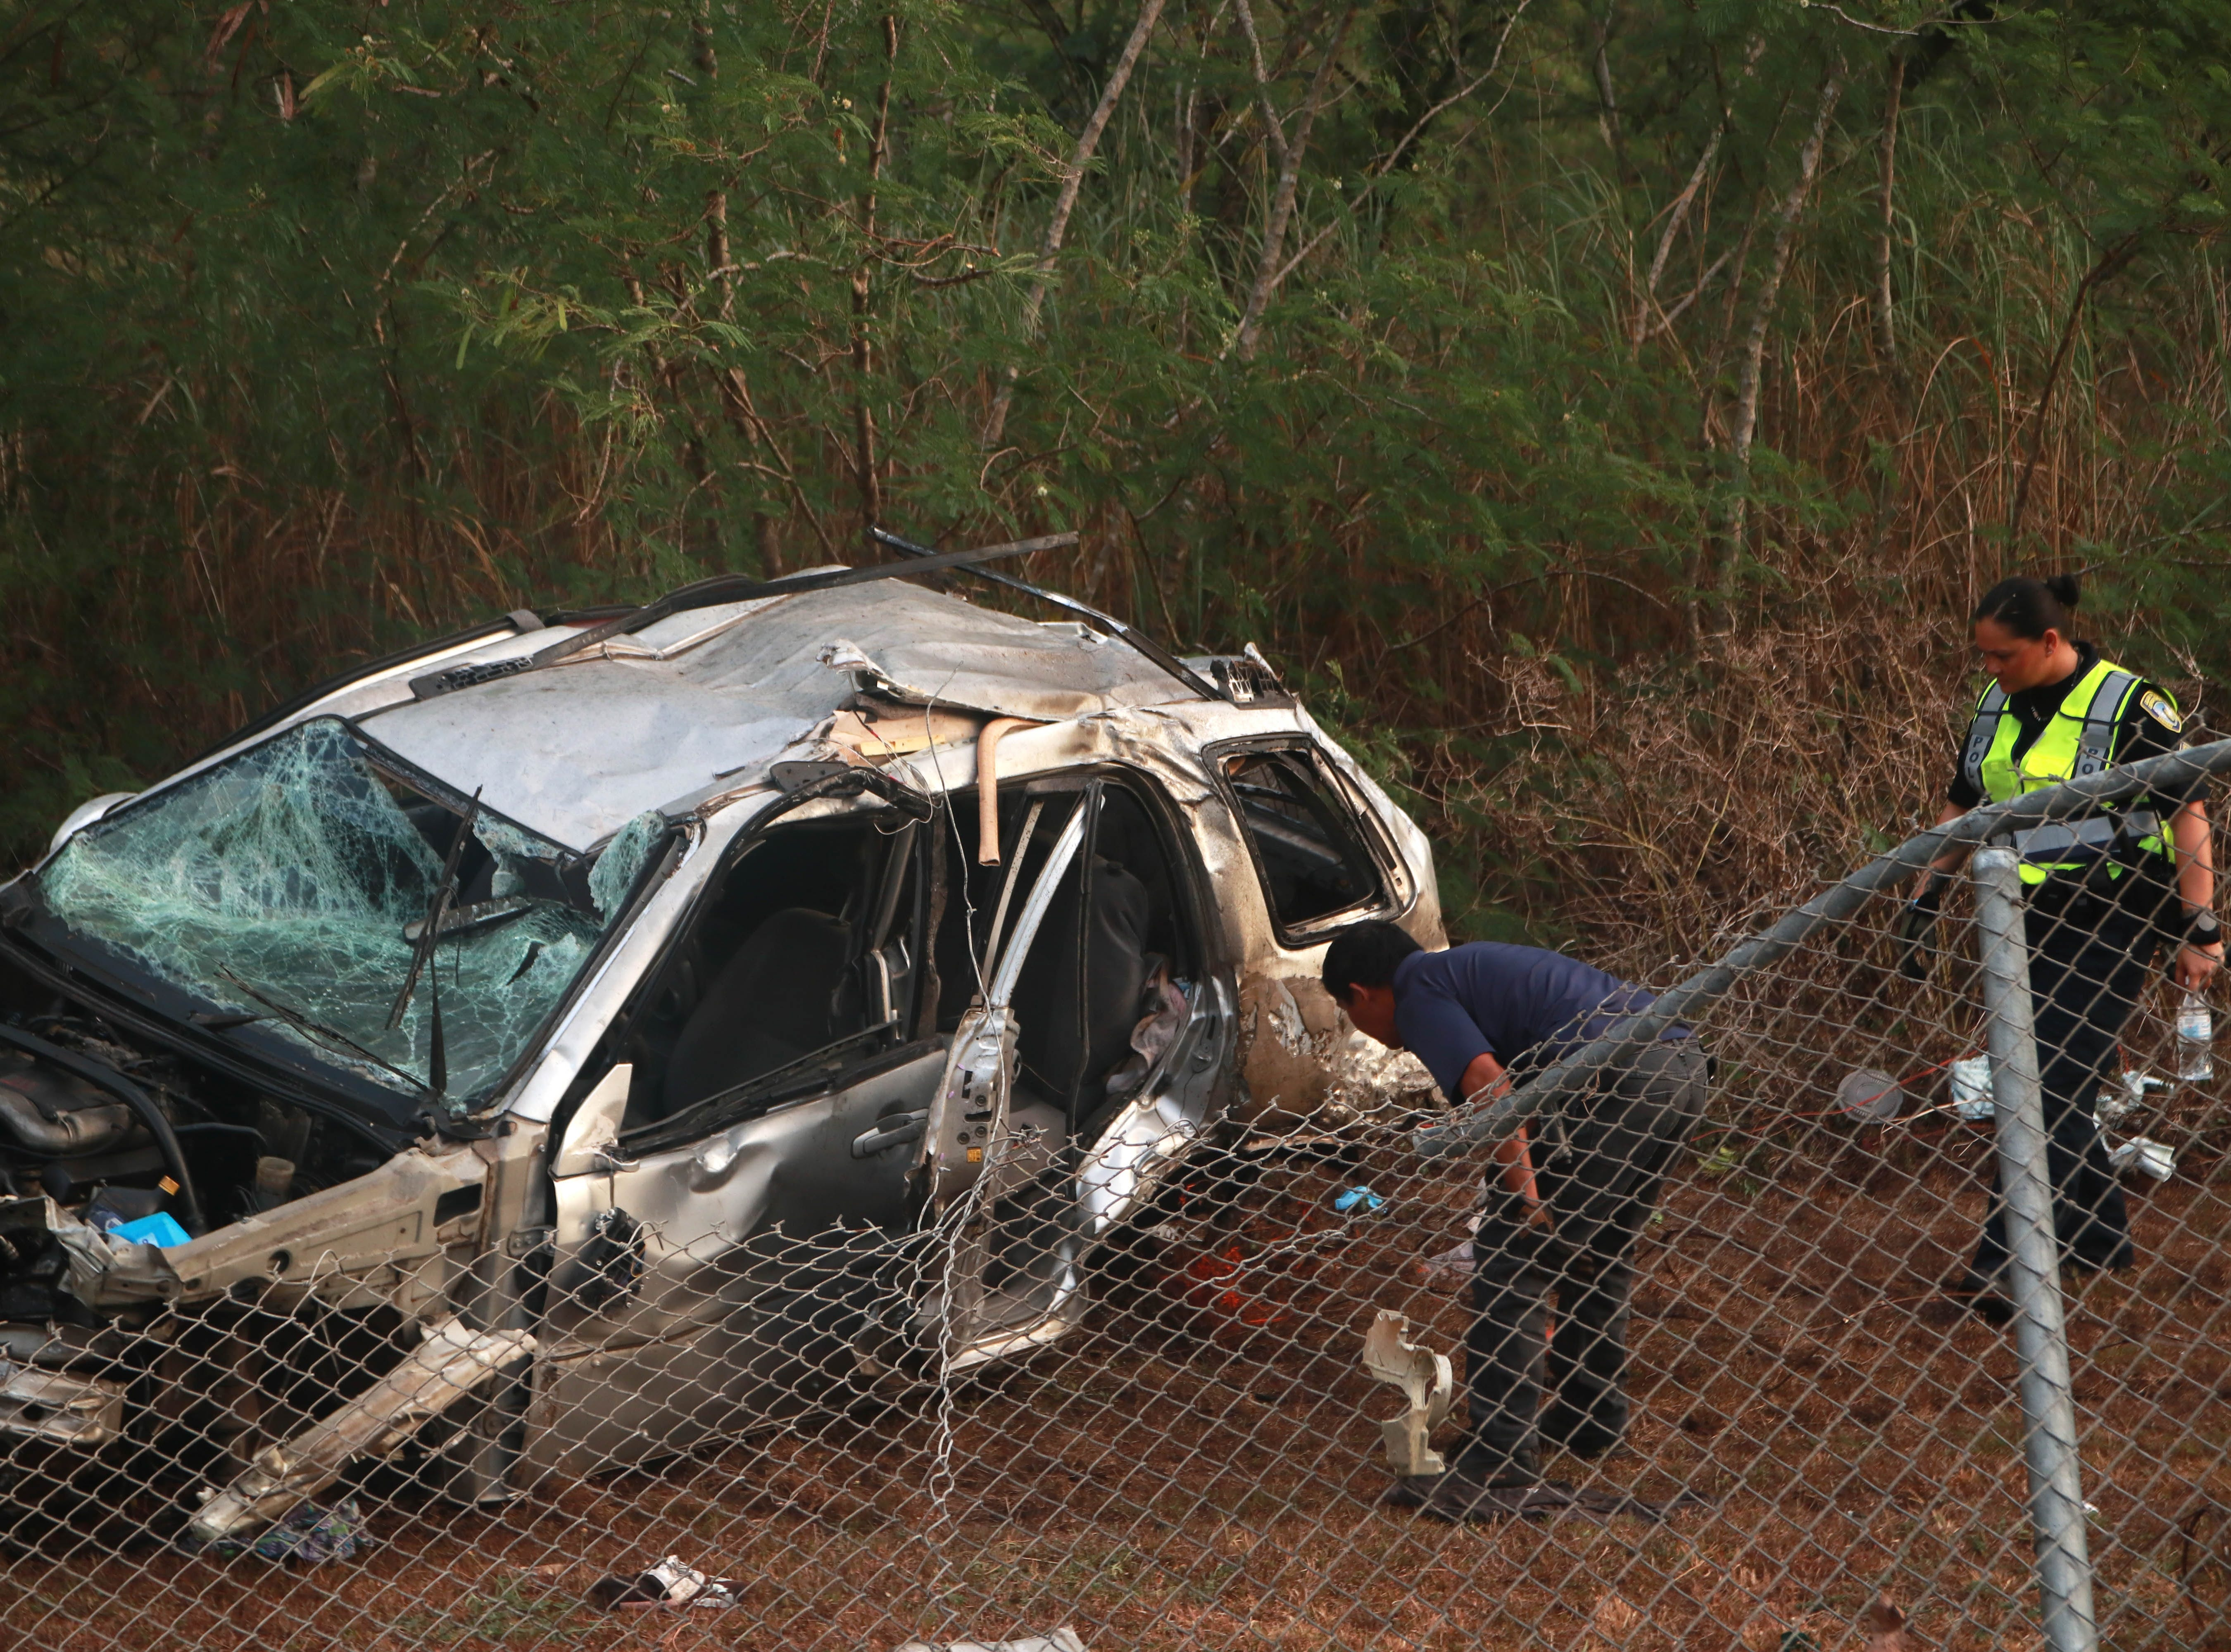 Police examine an SUV involved in a fatal accident early Tuesday morning on April 16, 2019 near the entrance to Agat.